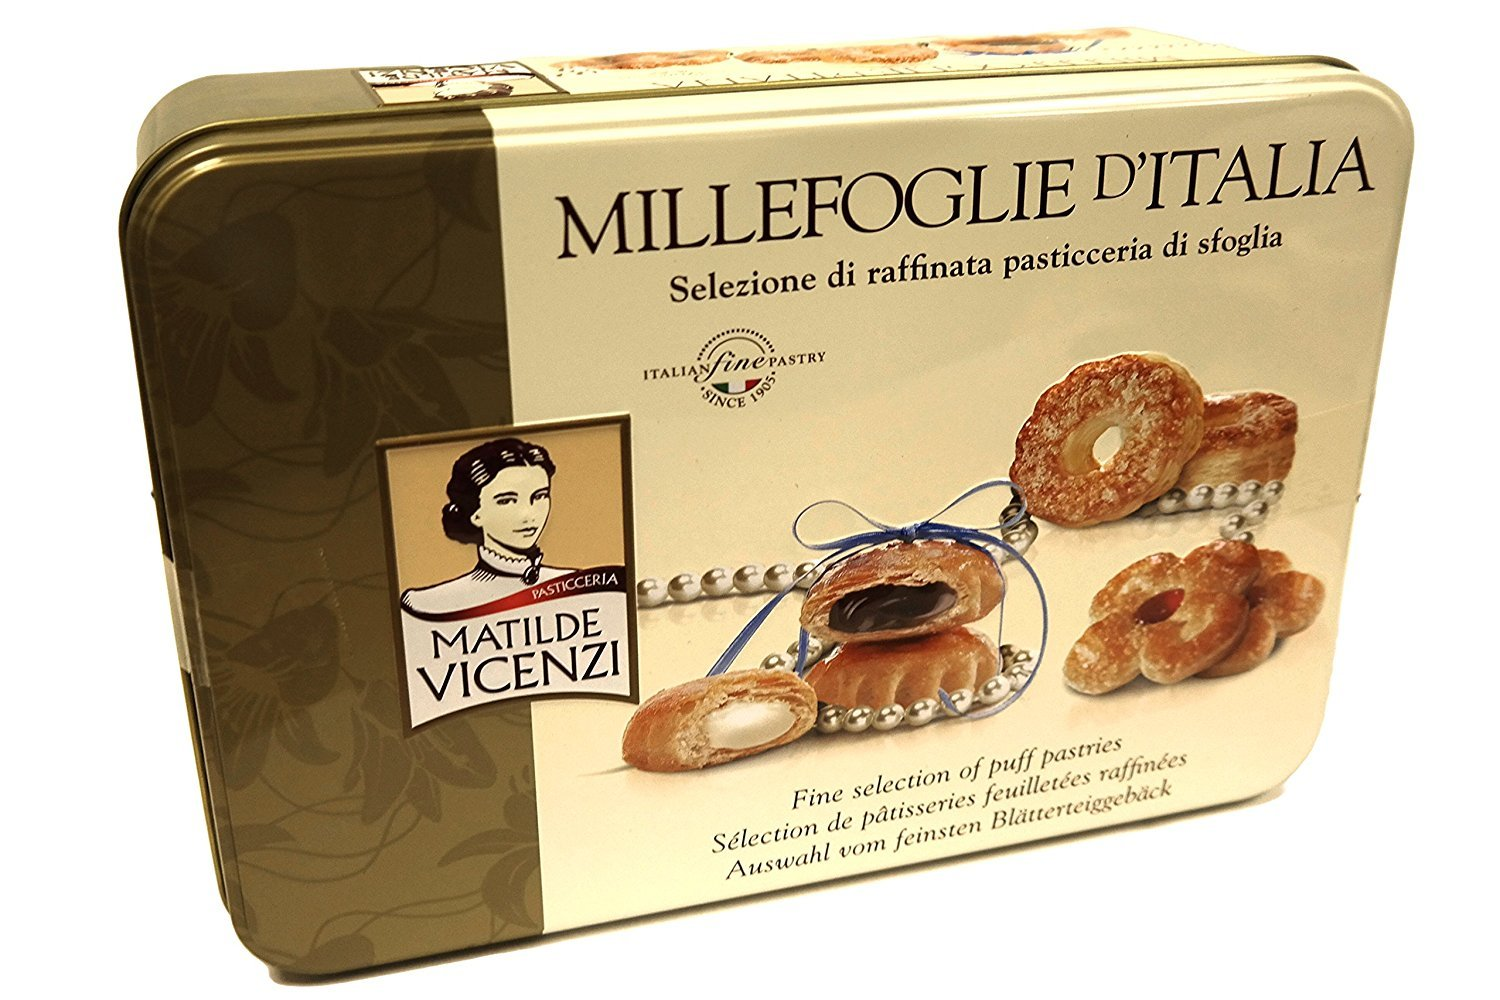 Millefoglie D'Italia Fine selection of puff pastries